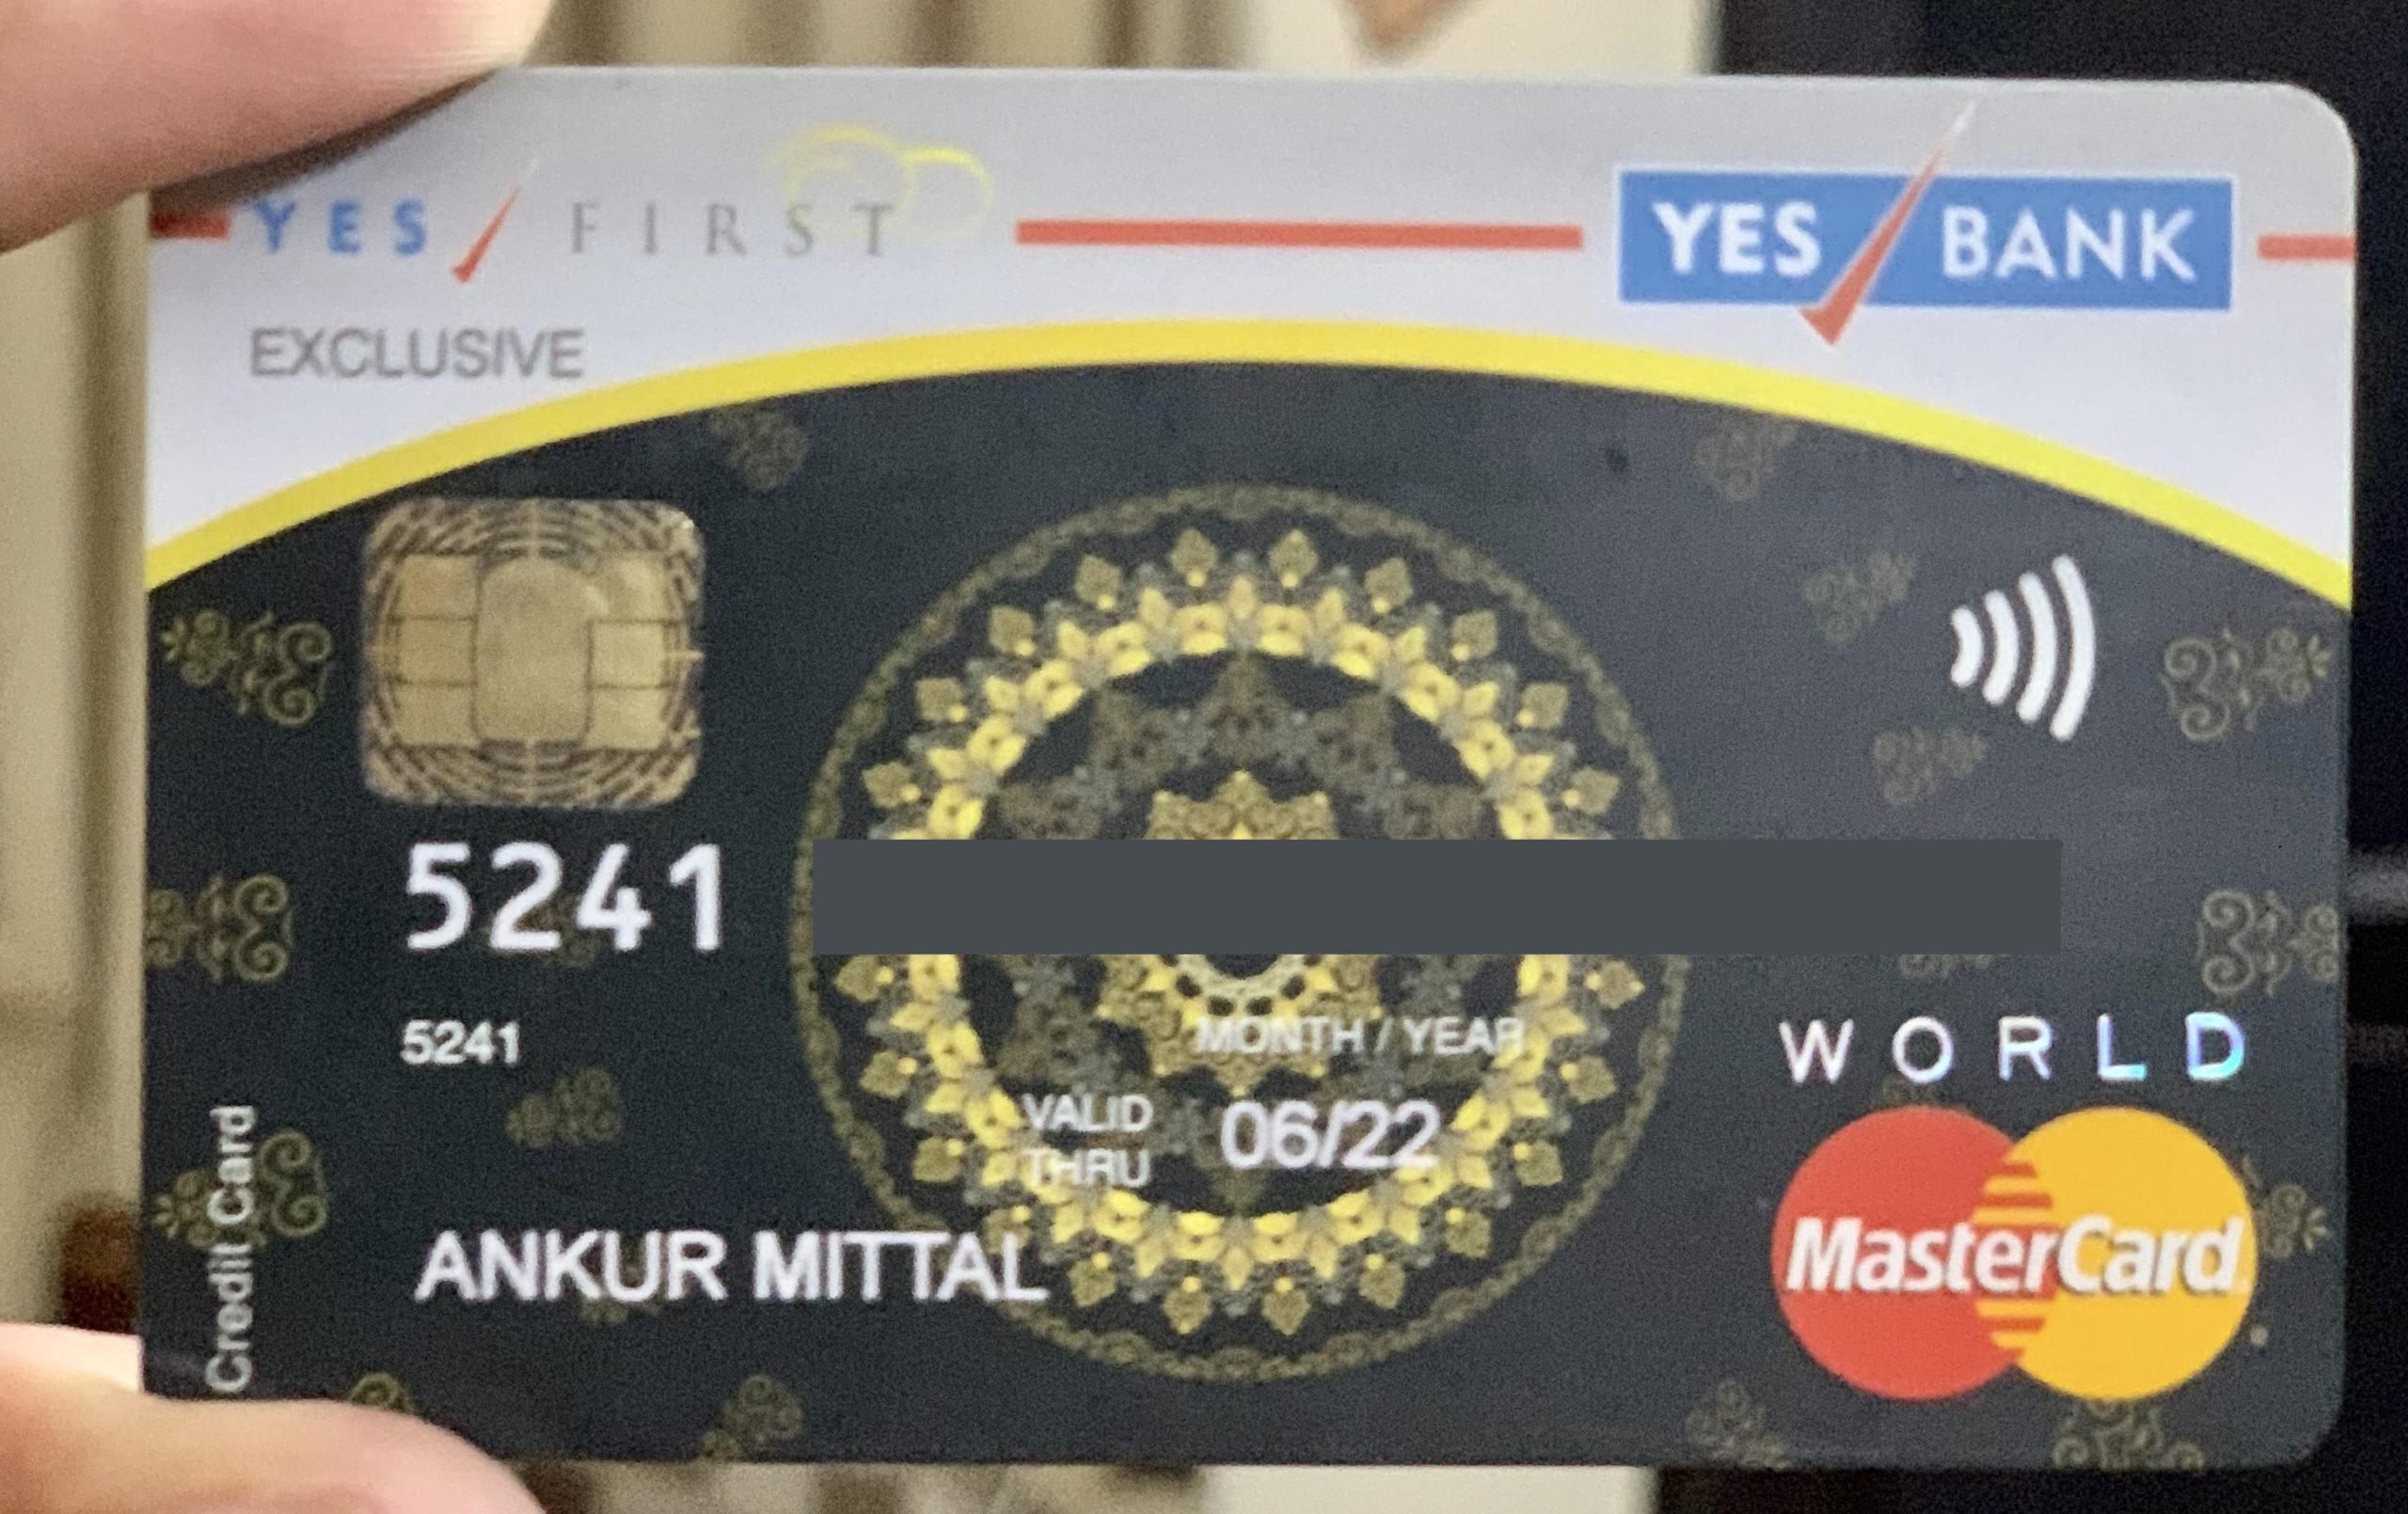 Yes Bank First Exclusive Credit Card Features & Review 1